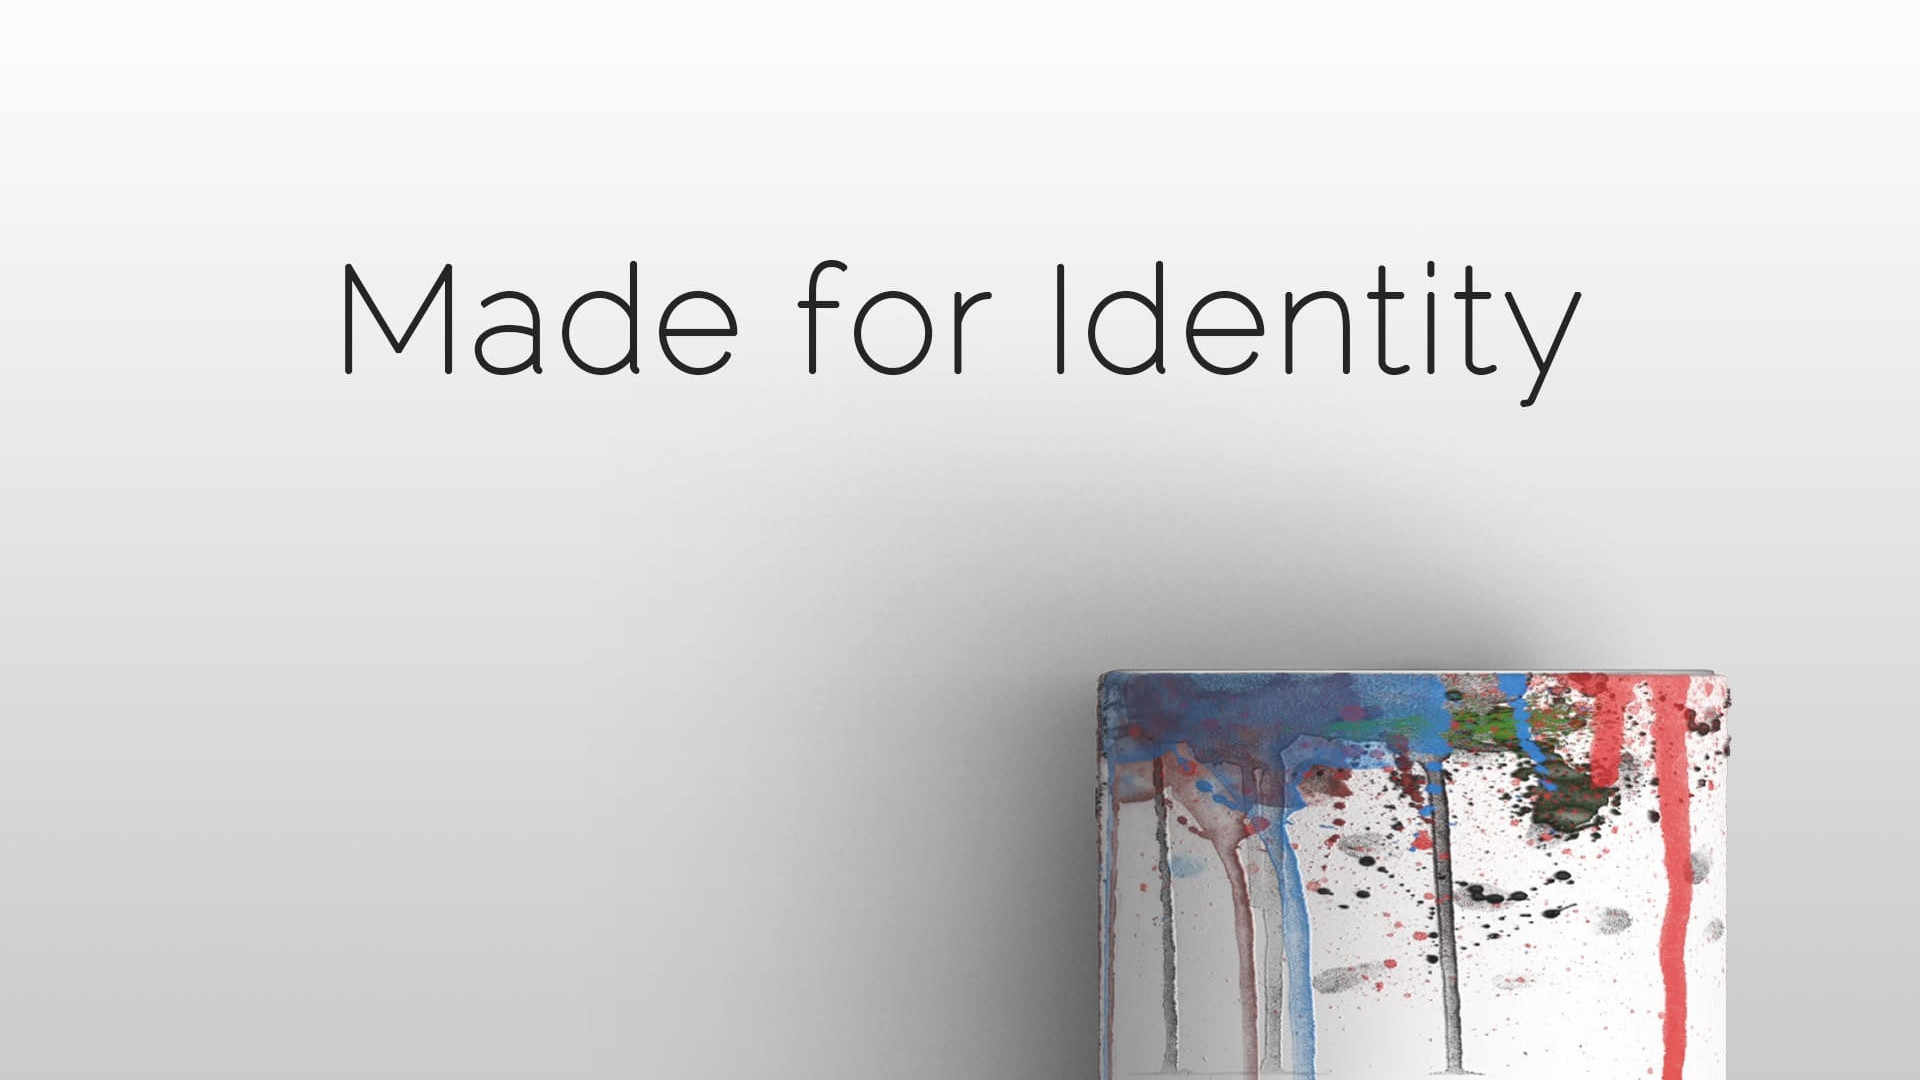 Made for Identity